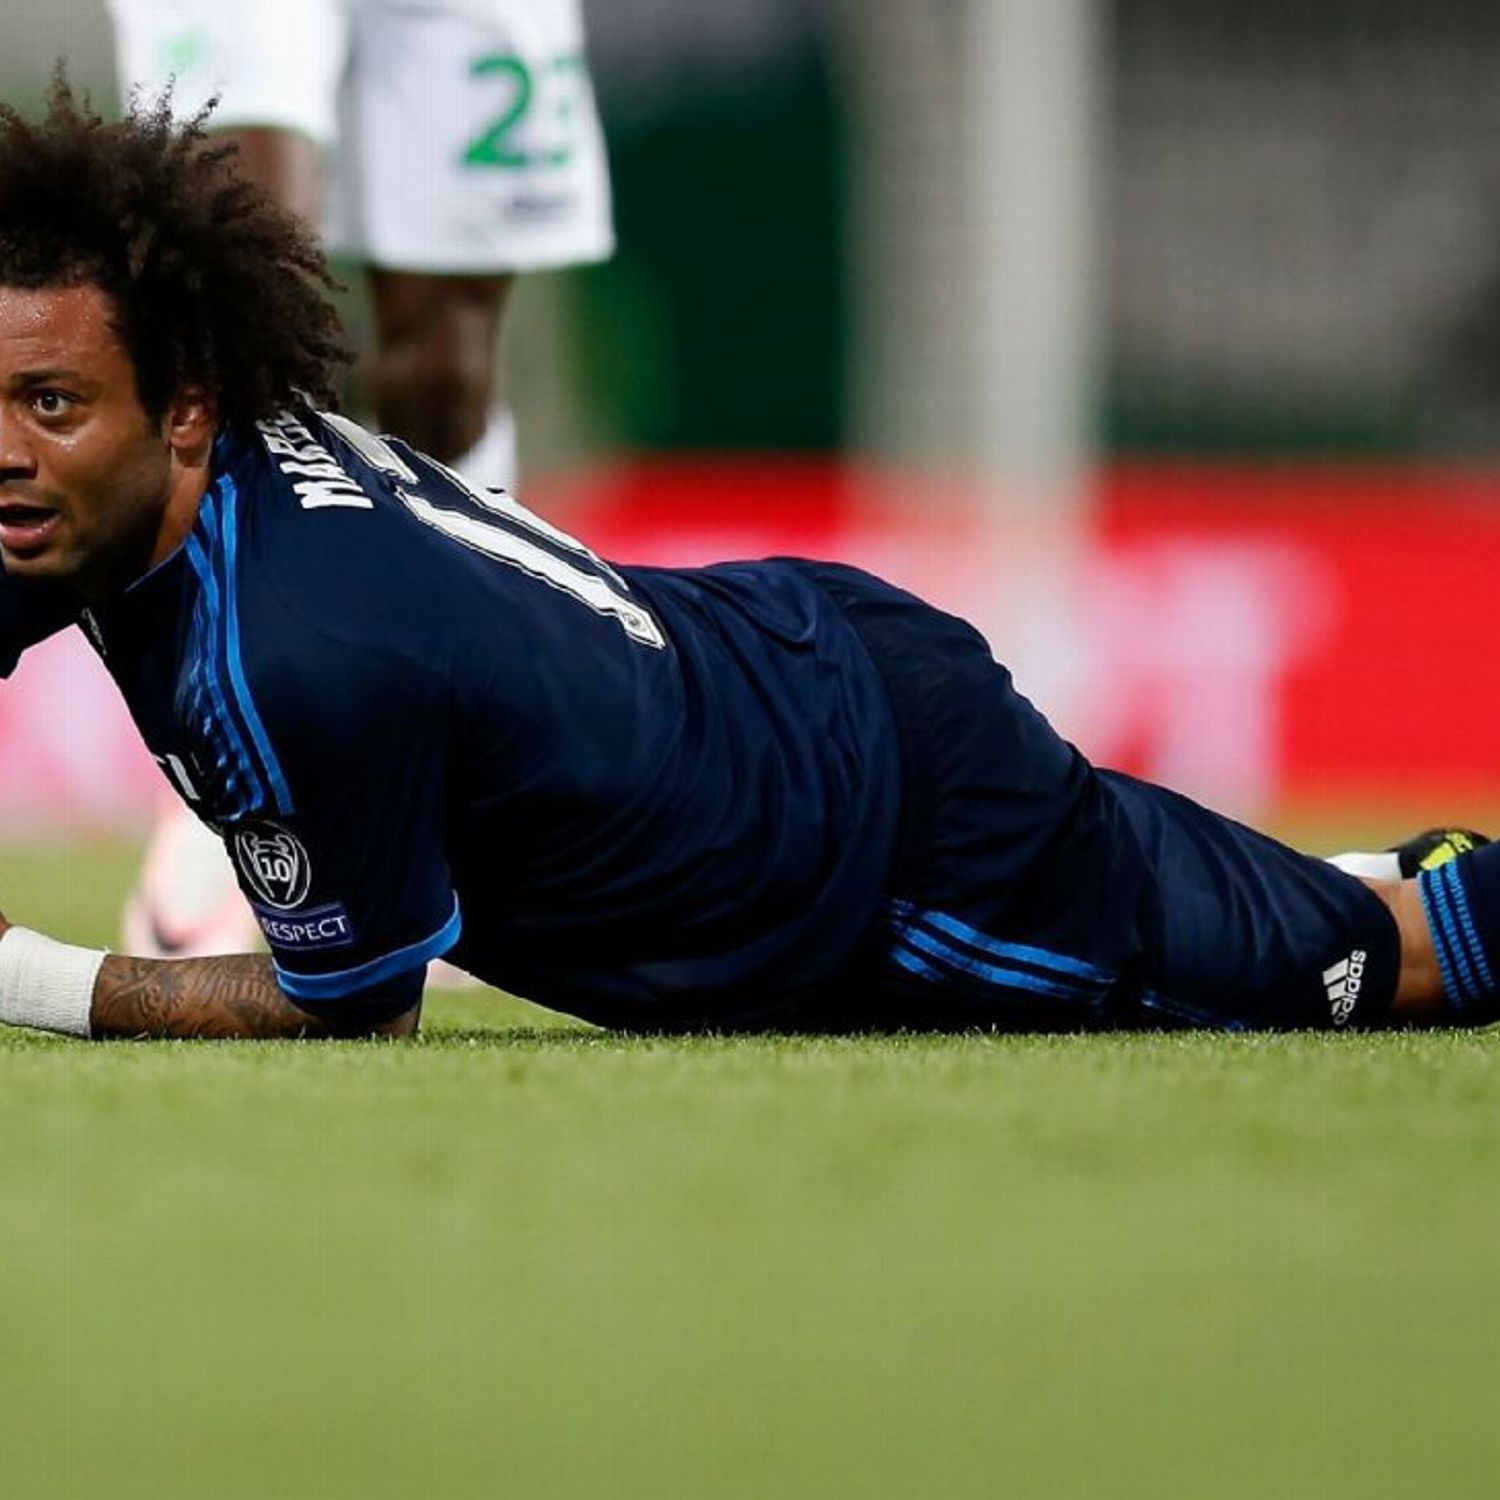 Real Madrid's Marcelo Criticised By Wolfsburg Coach